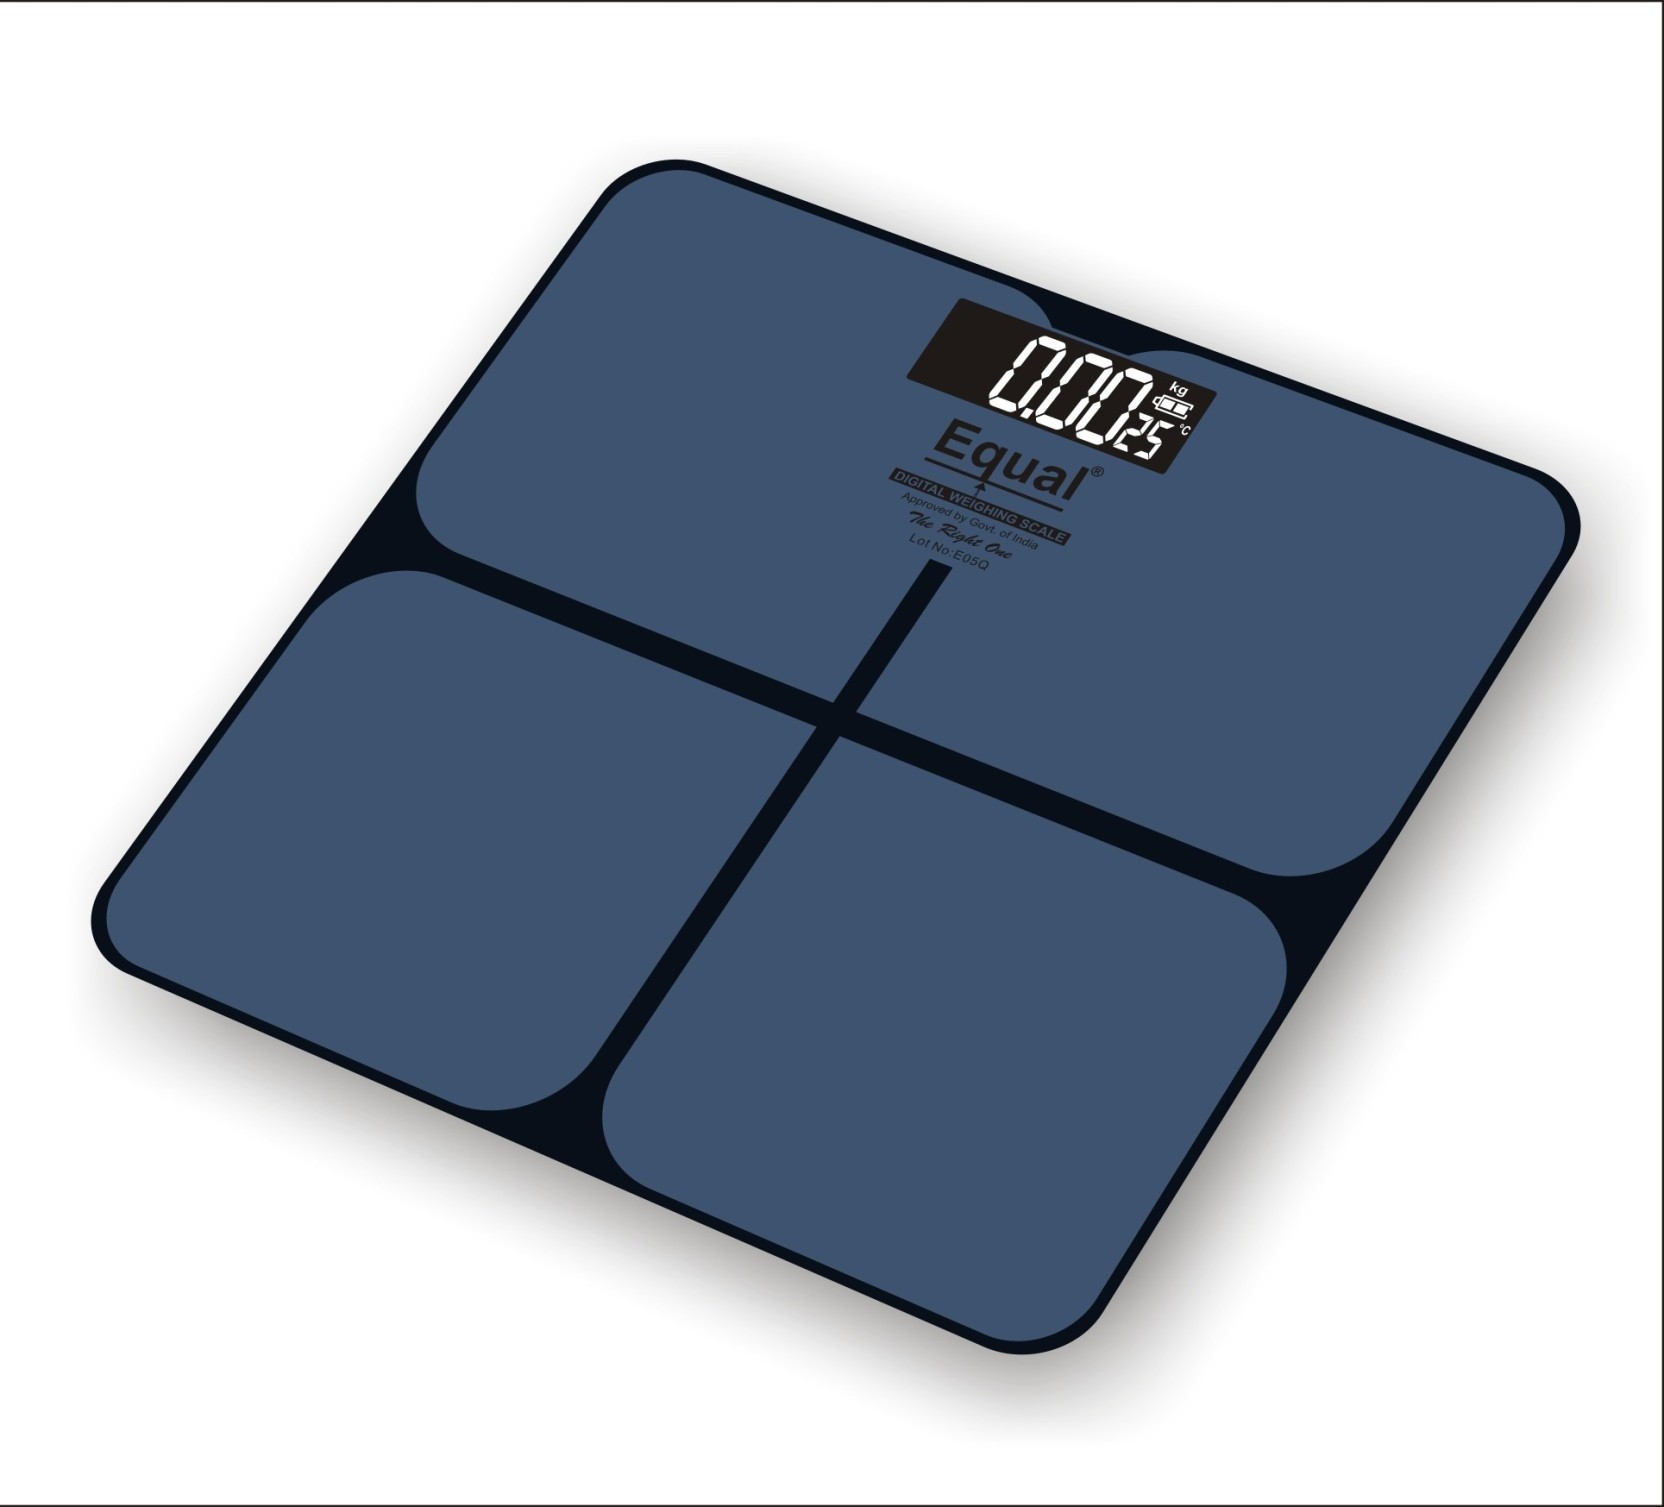 Equal rechargeable battery 180 kg Digital Weighing Scale Price in ...